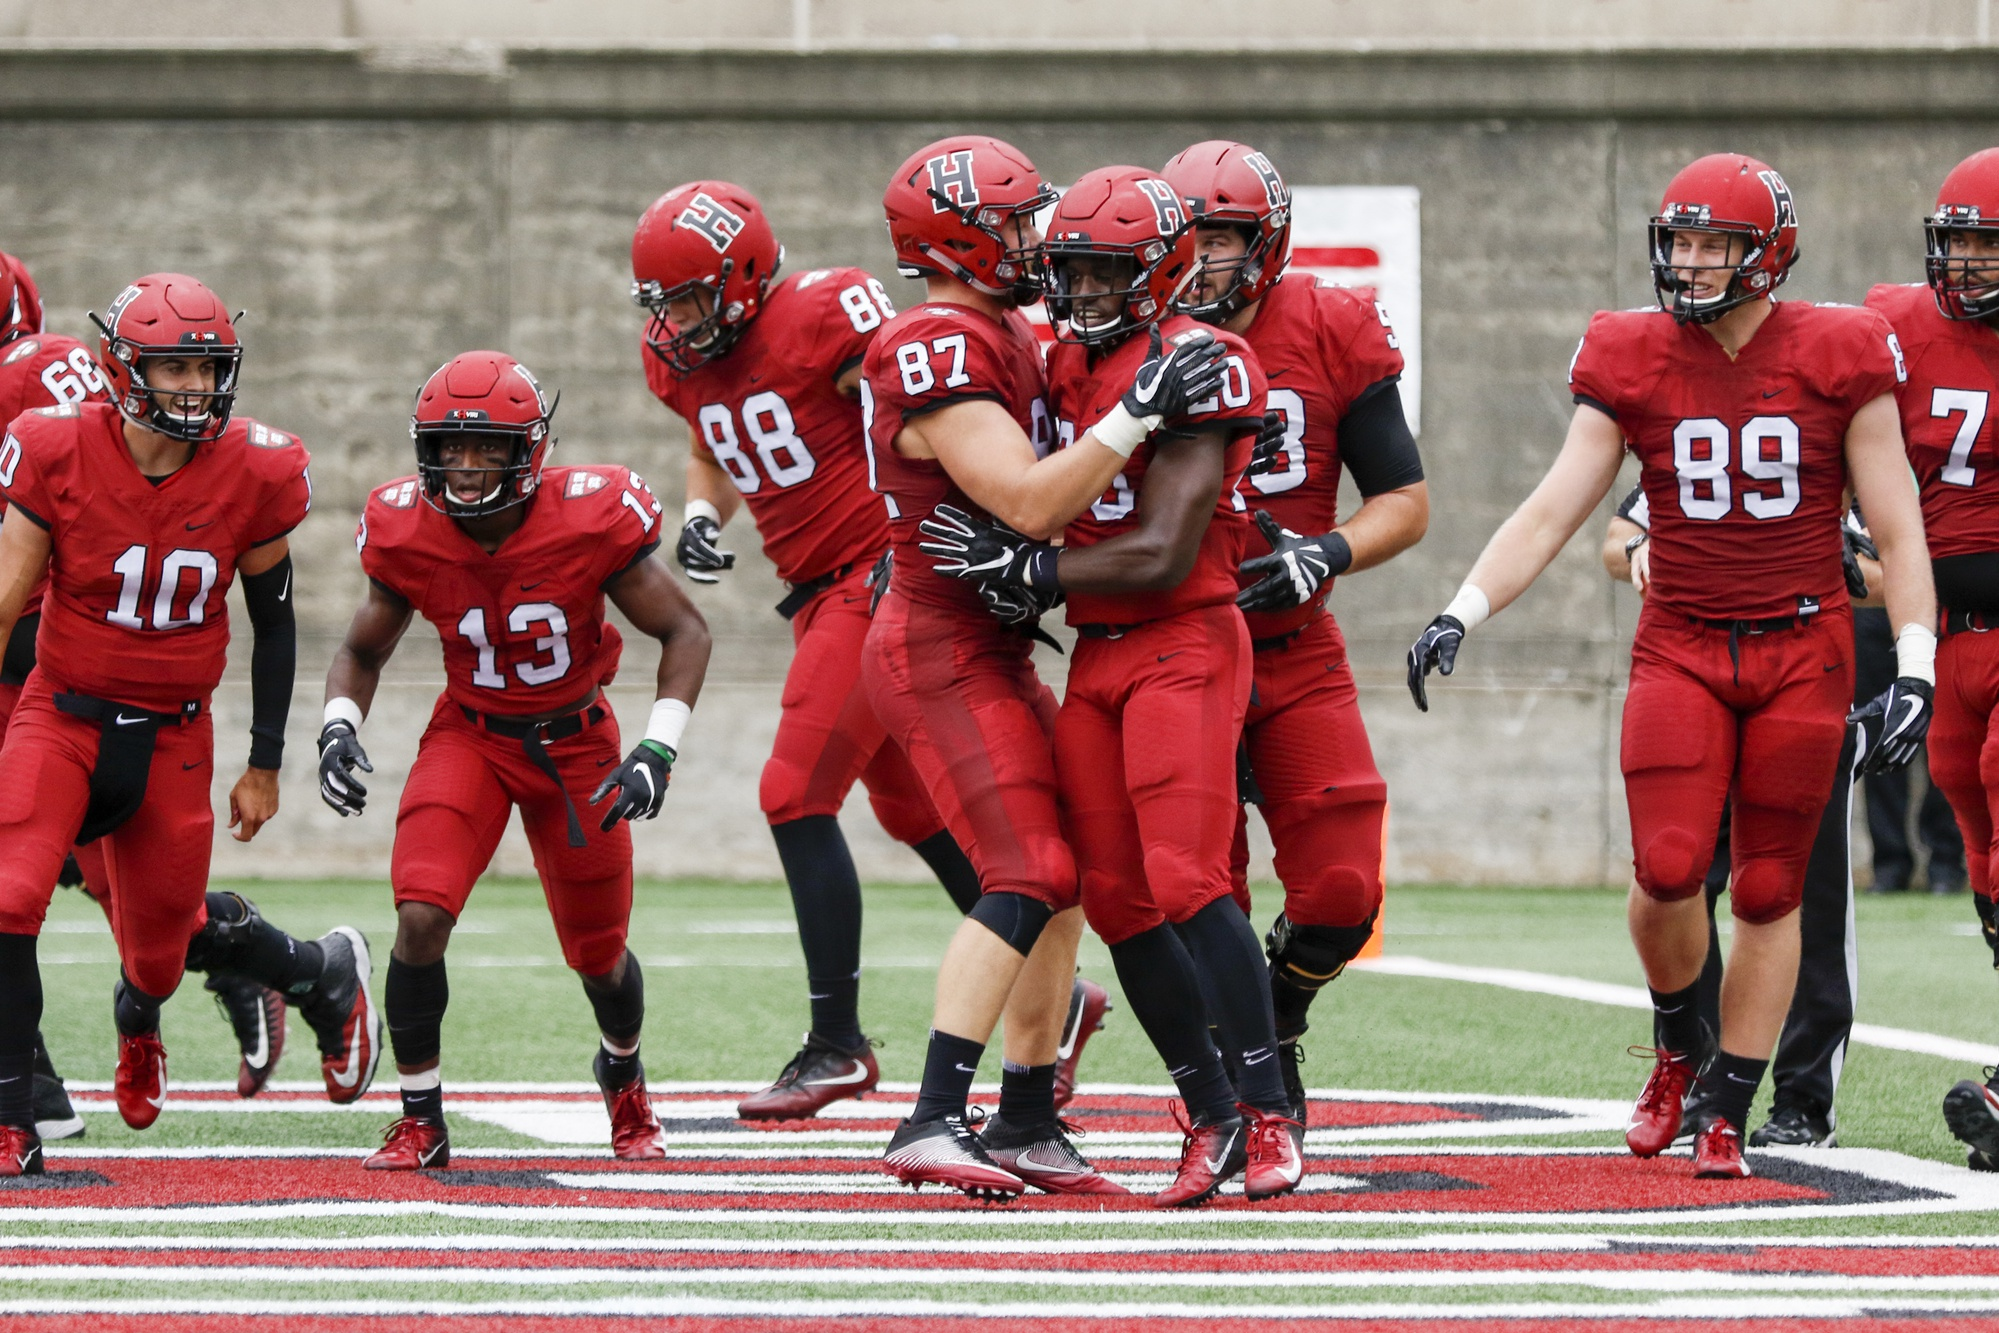 Harvard's offensive and defensive lines propelled the team to victory this weekend over San Diego. The Crimson's upper hand in the trenches explains the squad's drastic advantage in the ground game: 266 yards to just 93.